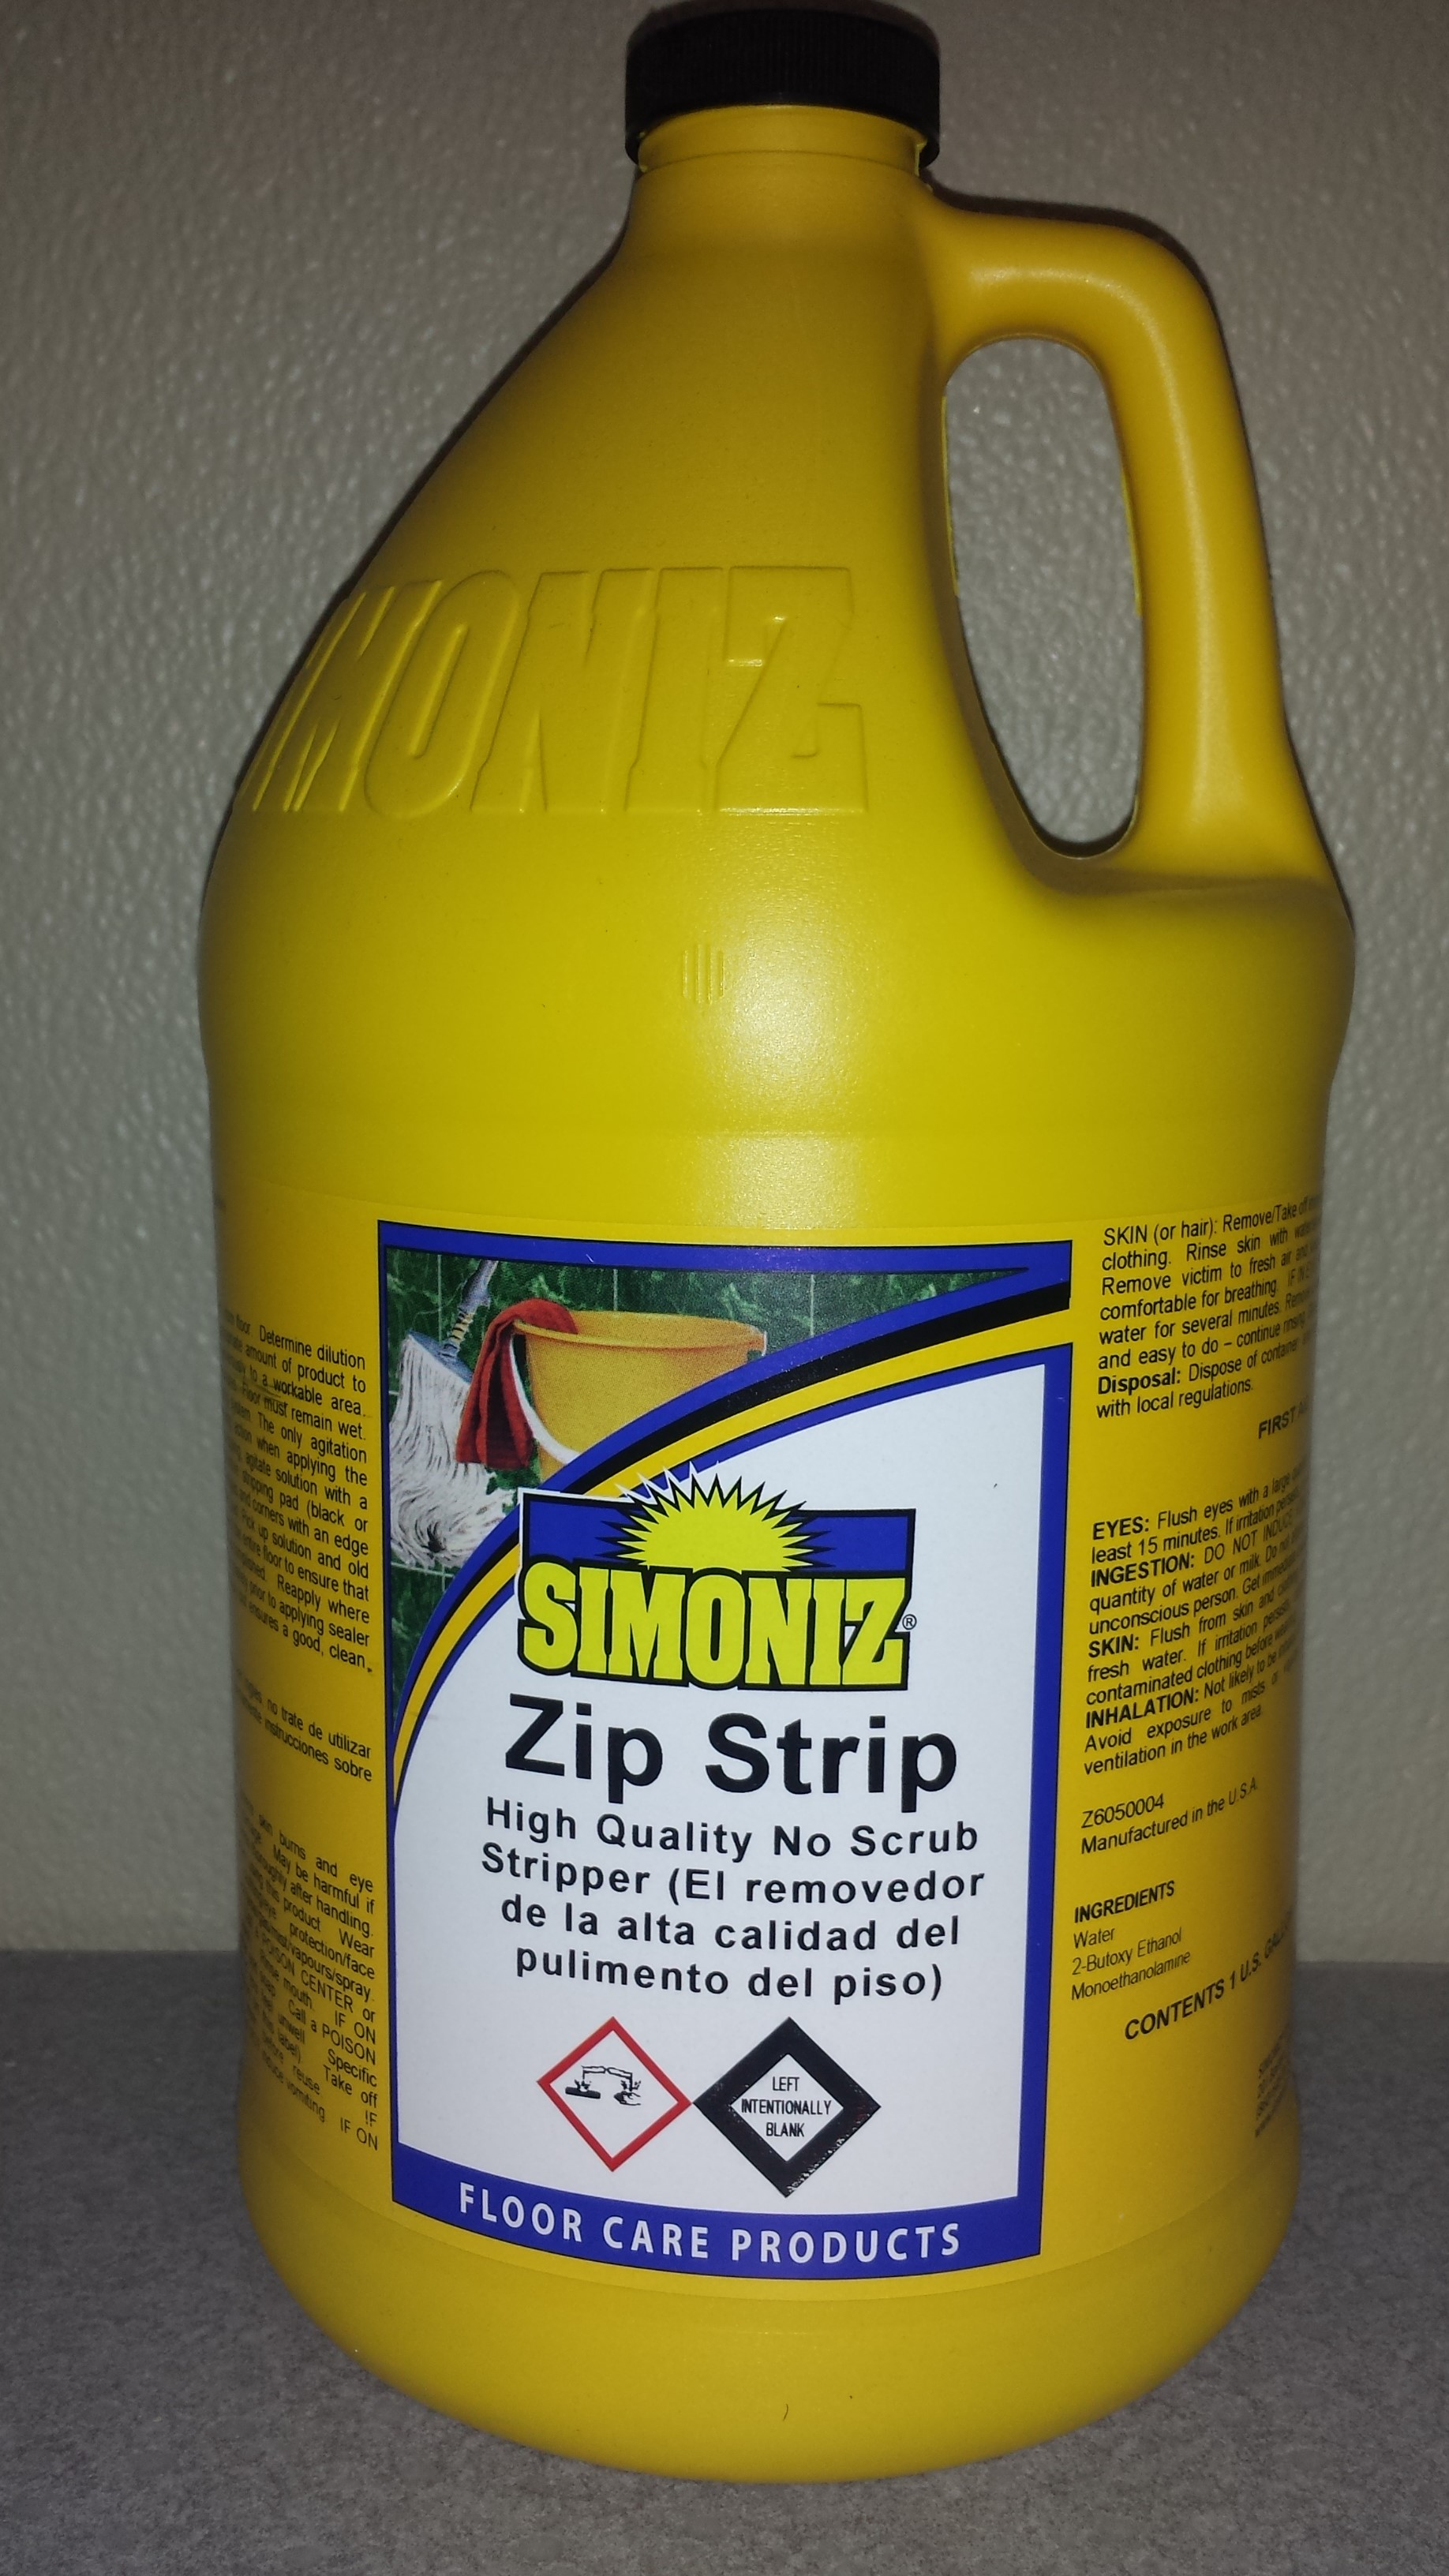 Zip Strip Stripper